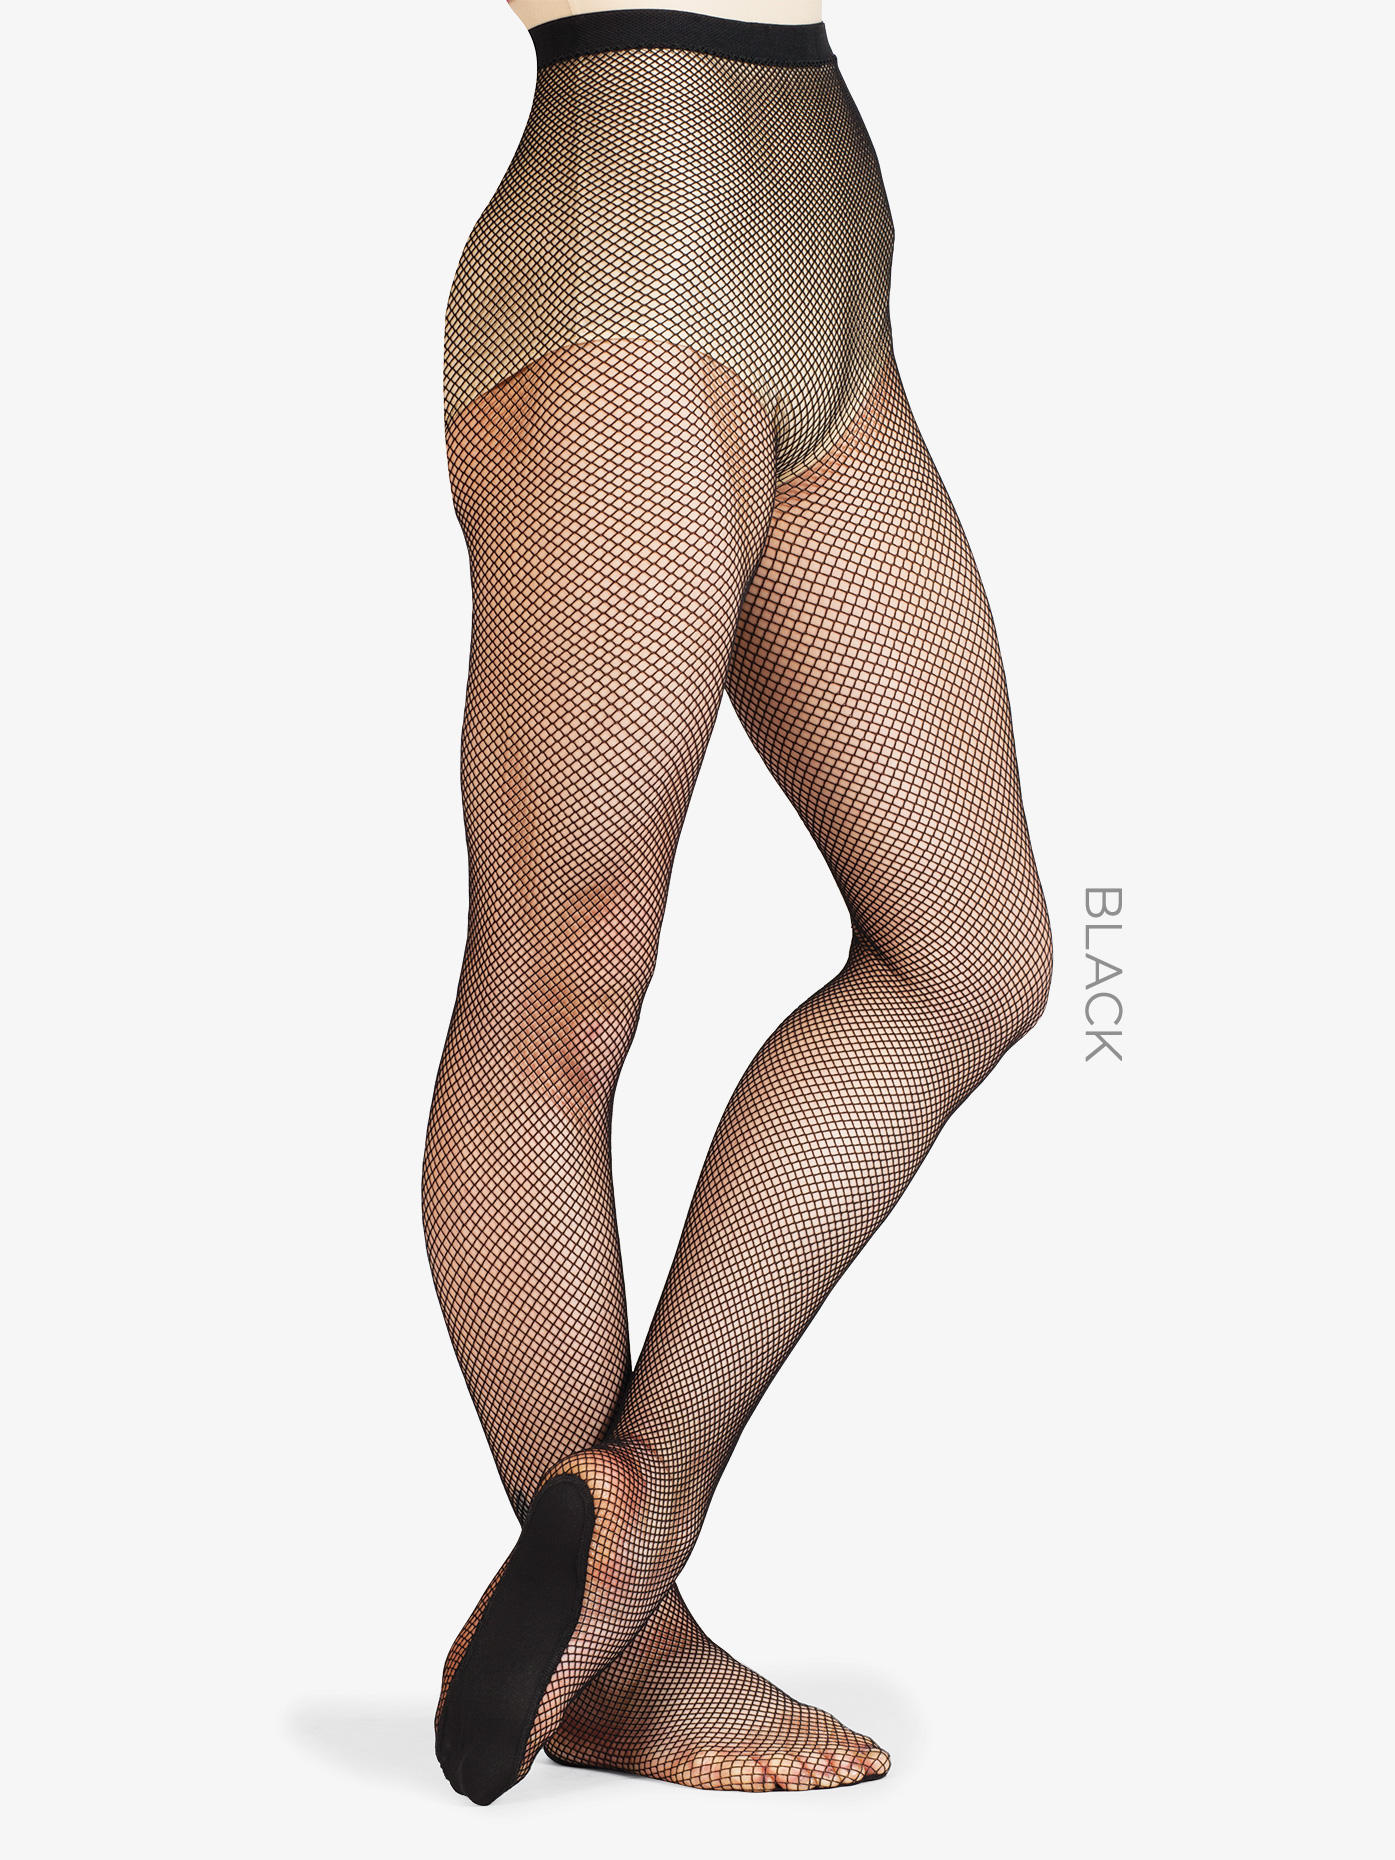 Spandex fishnet pantyhose backseam spandex — photo 8